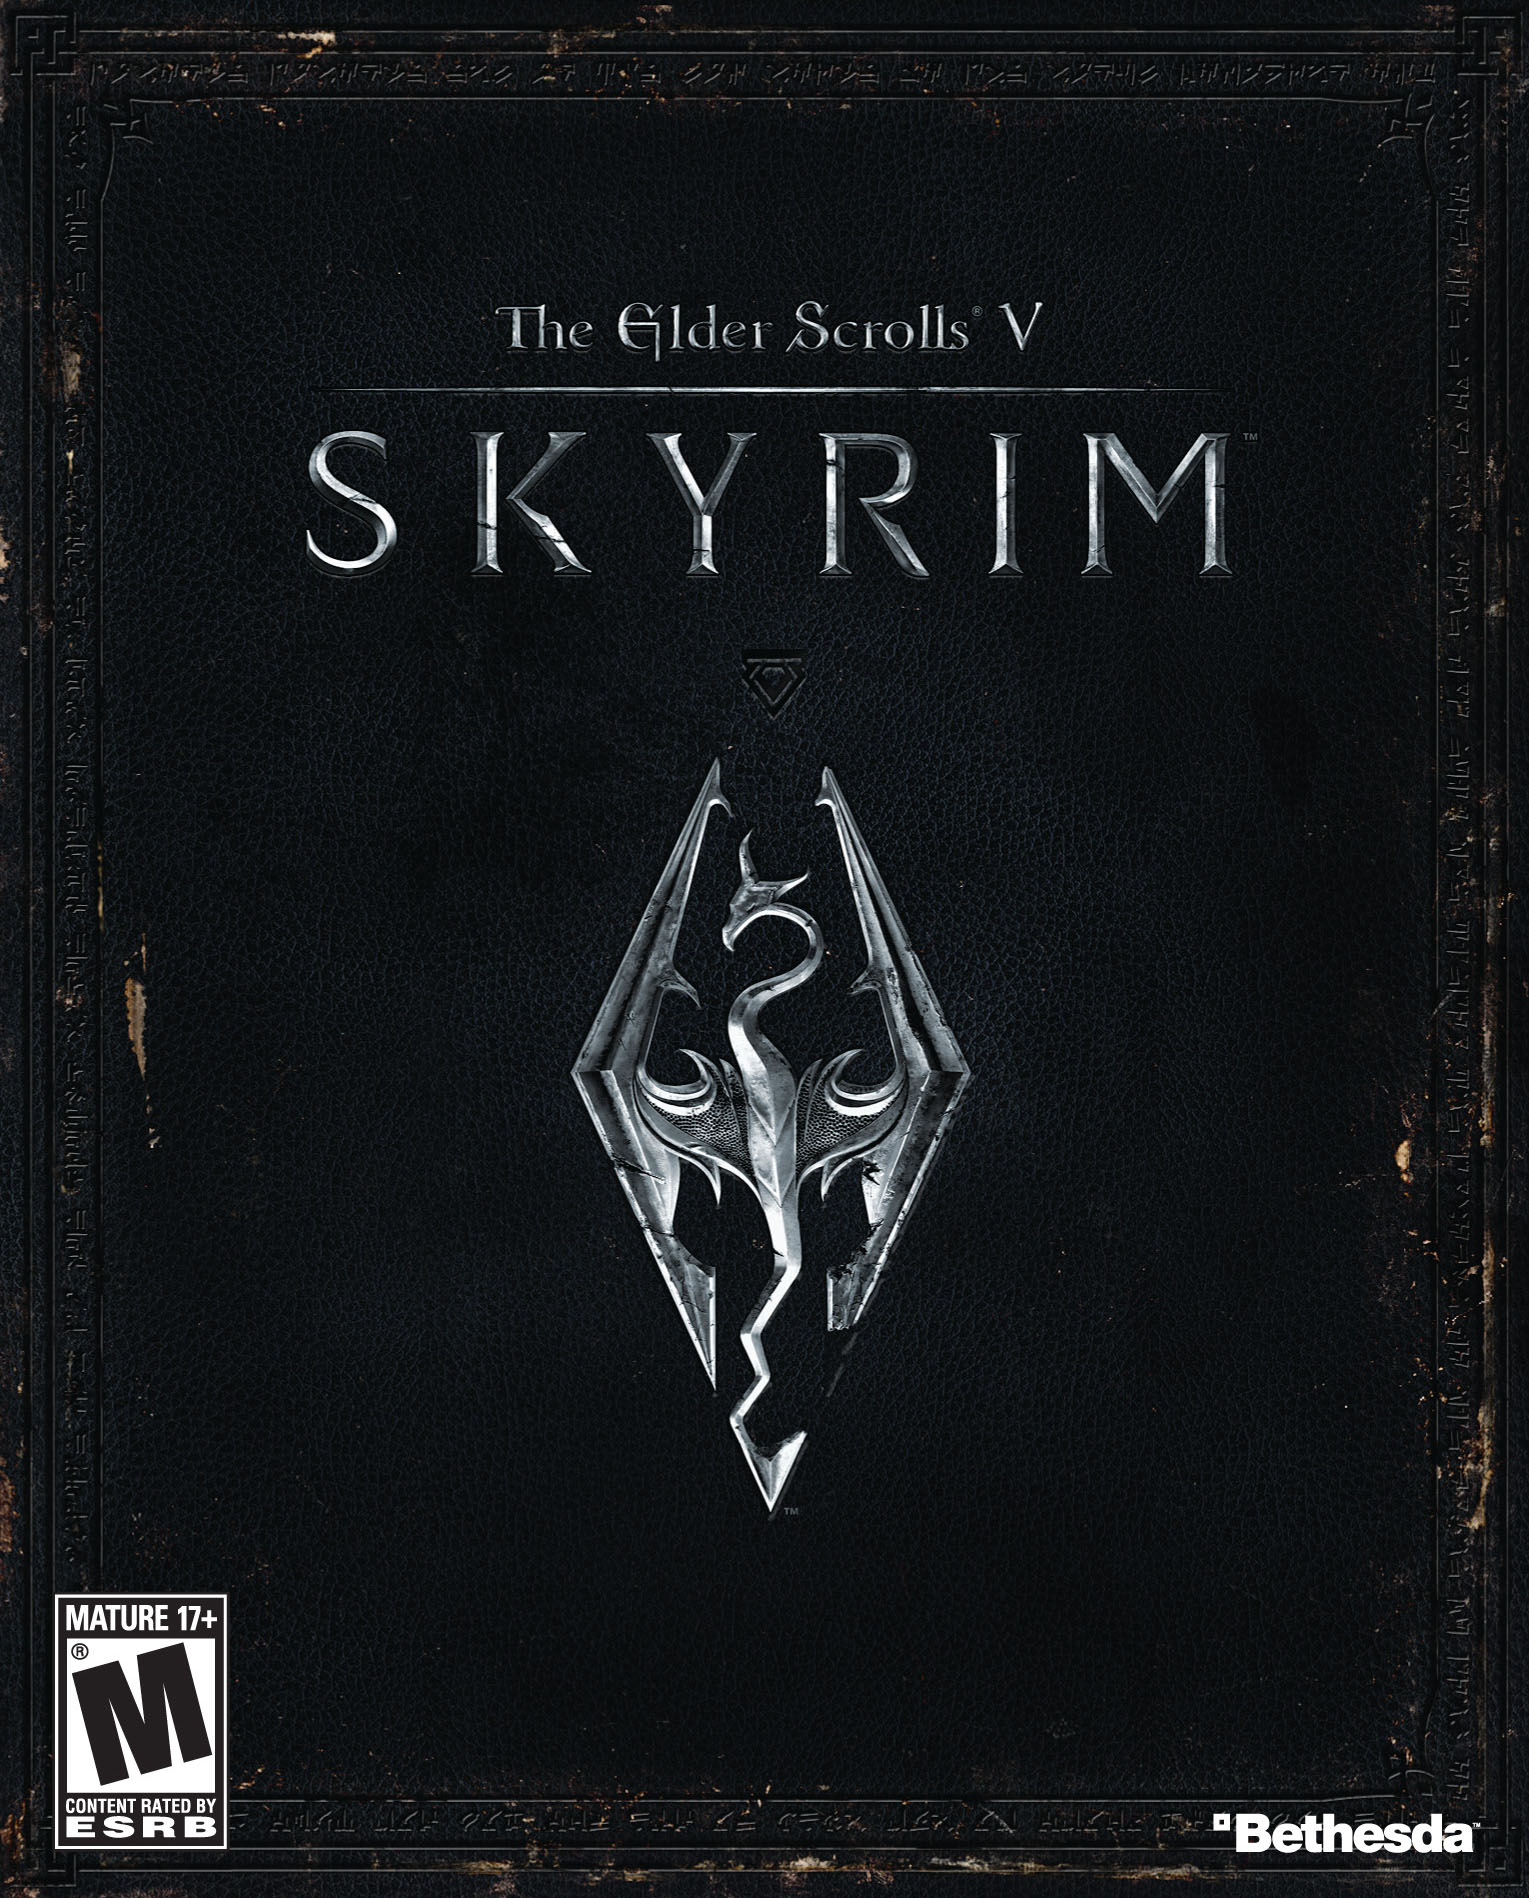 The Elder Scrolls V Skyrim Download Free Full Version PC